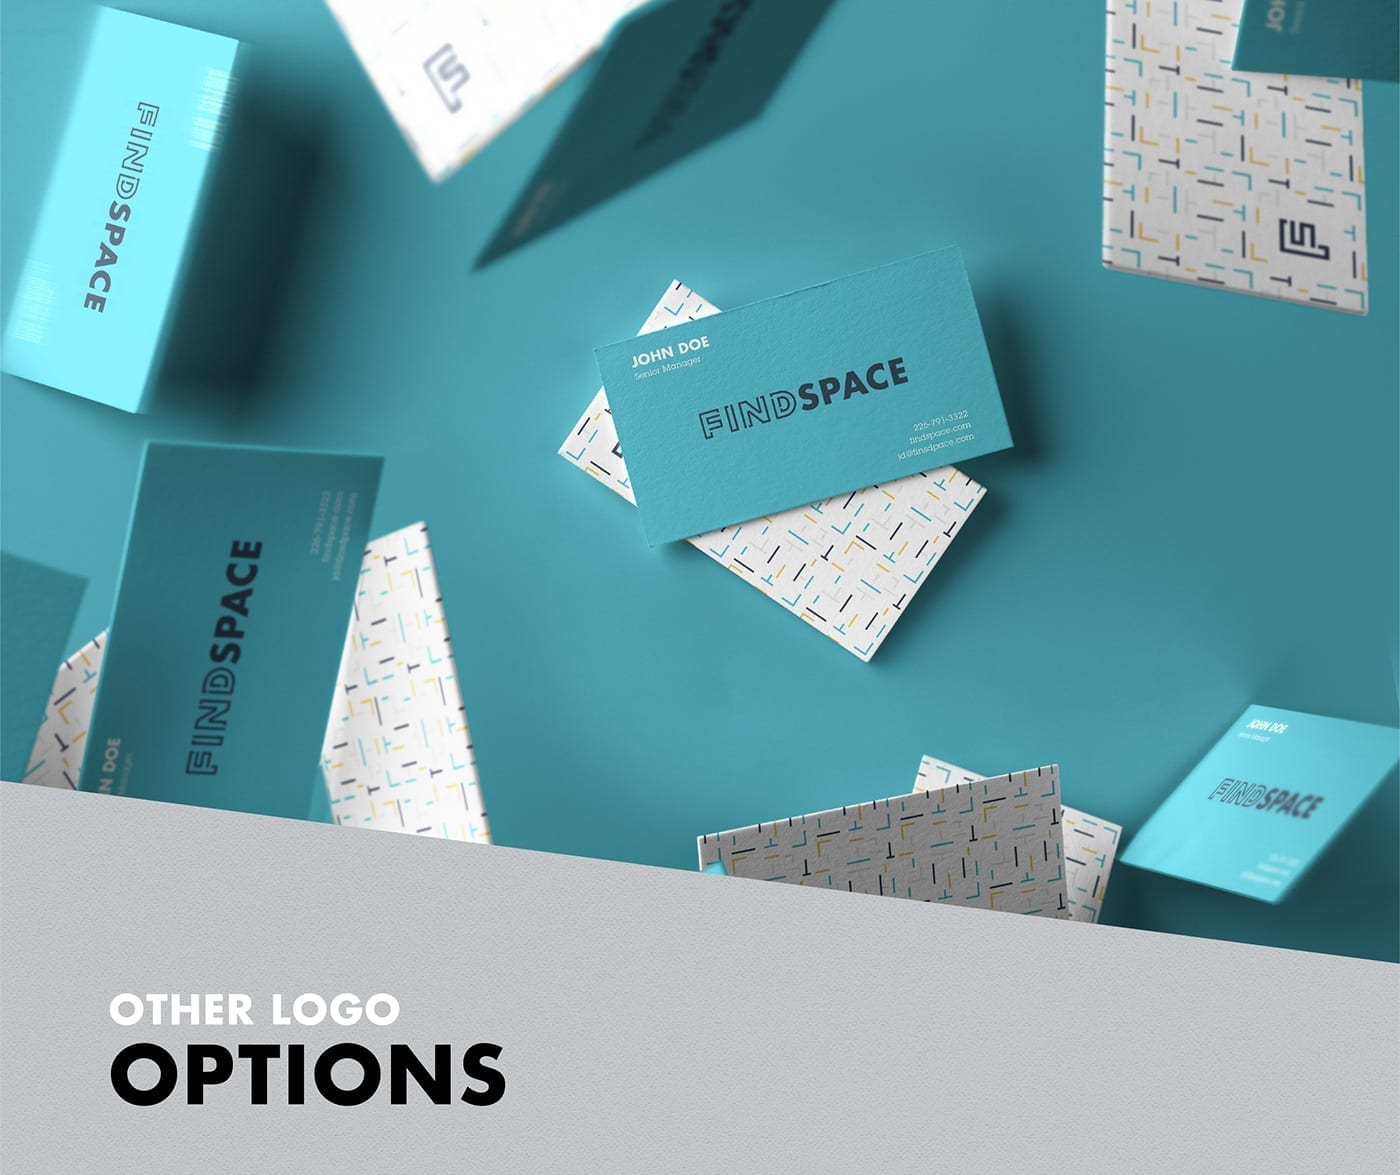 findspace_other-logo-options